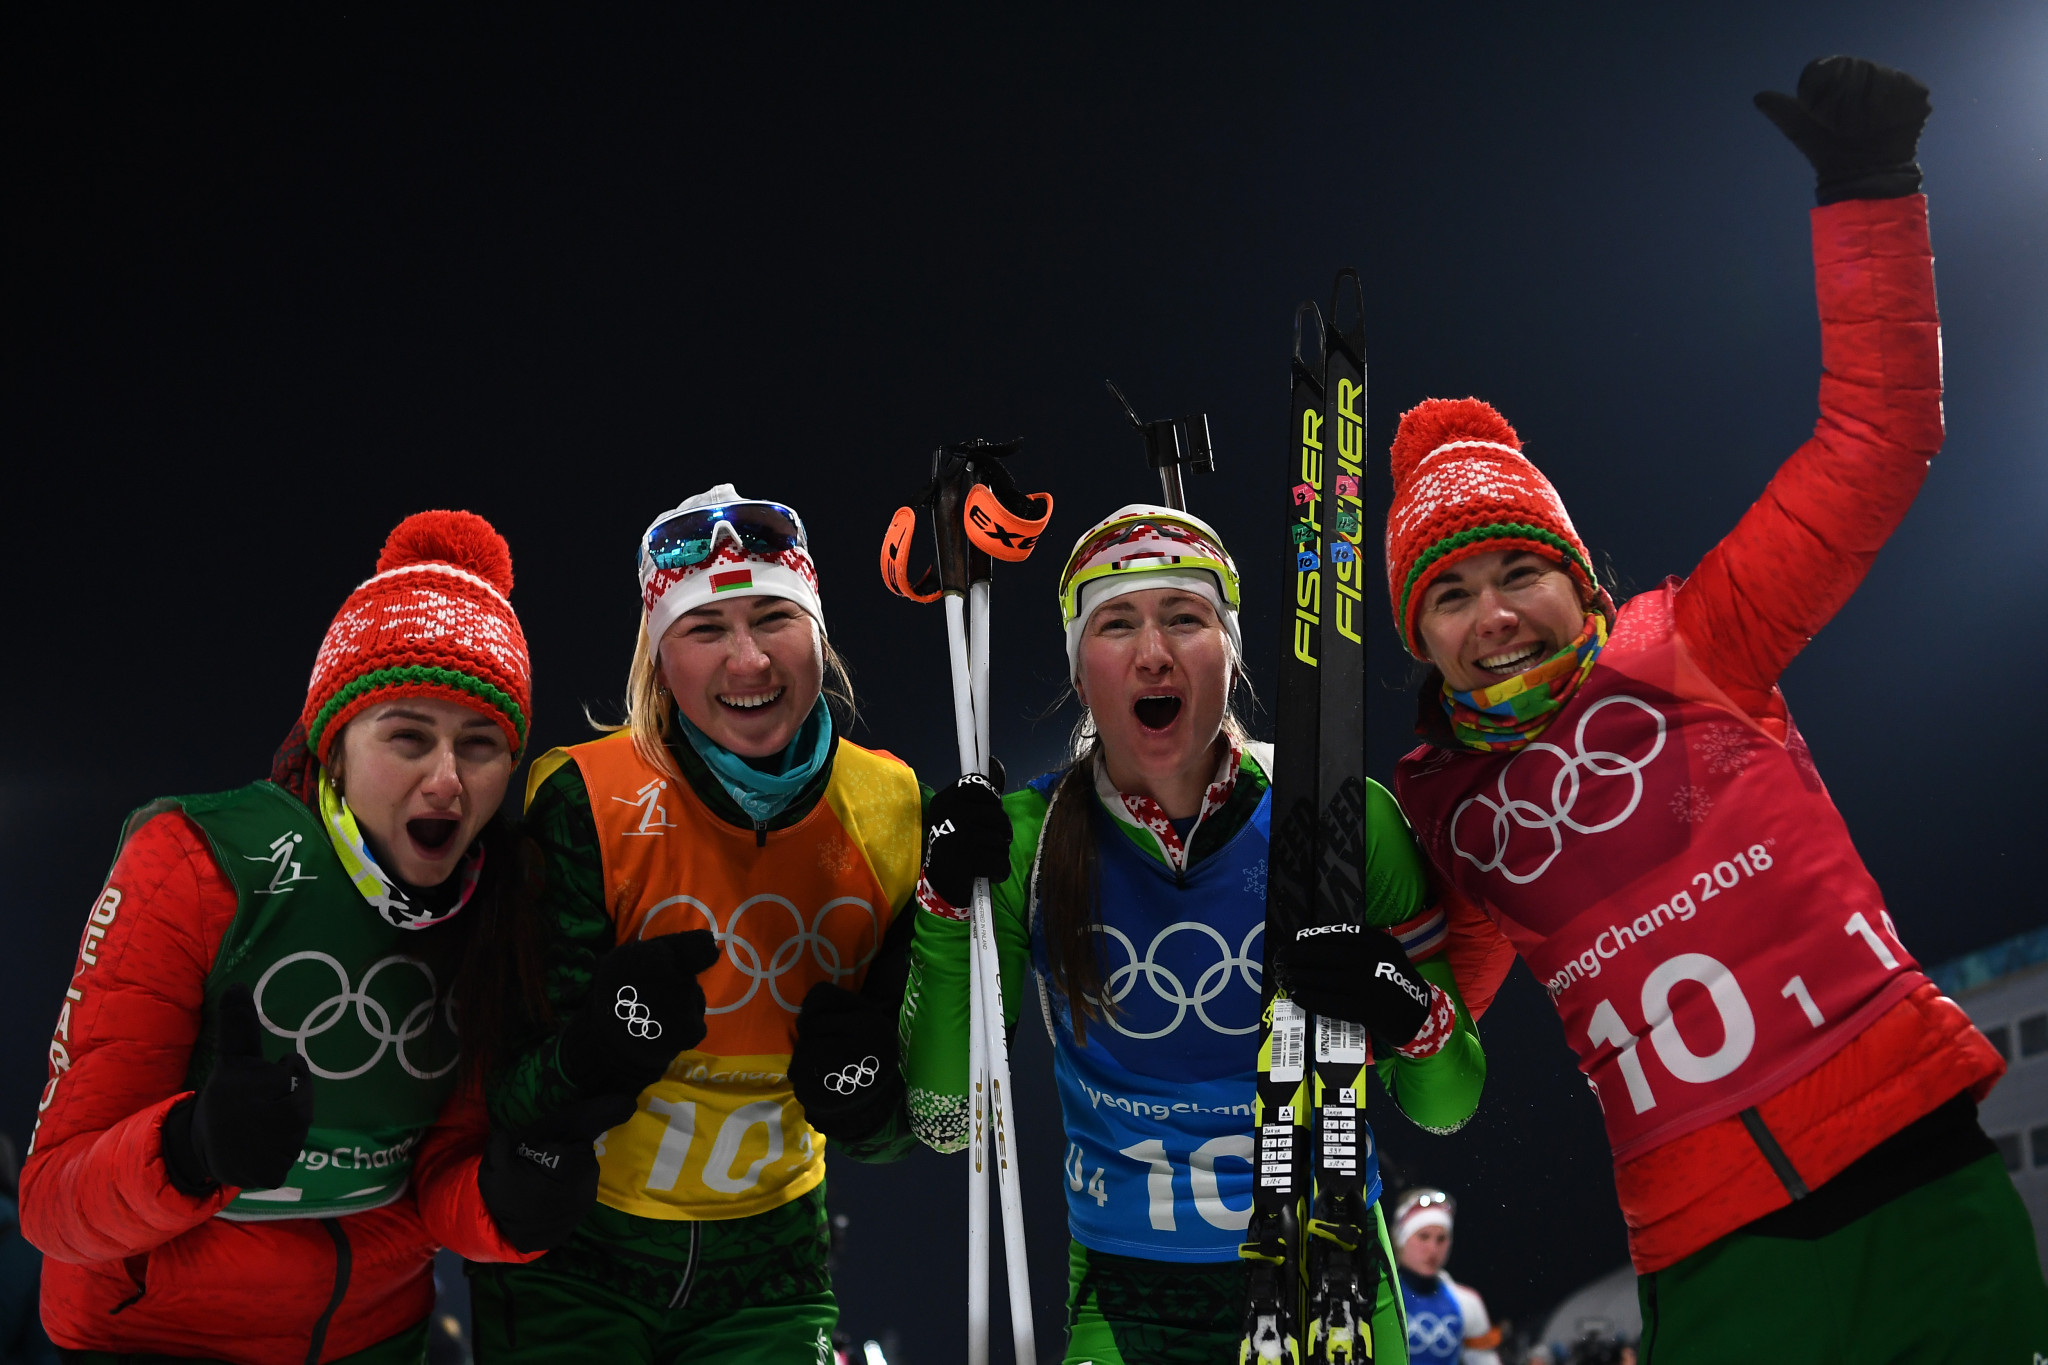 The victory for Belarus was the country's first in the women's relay at the Winter Olympics ©Getty Images